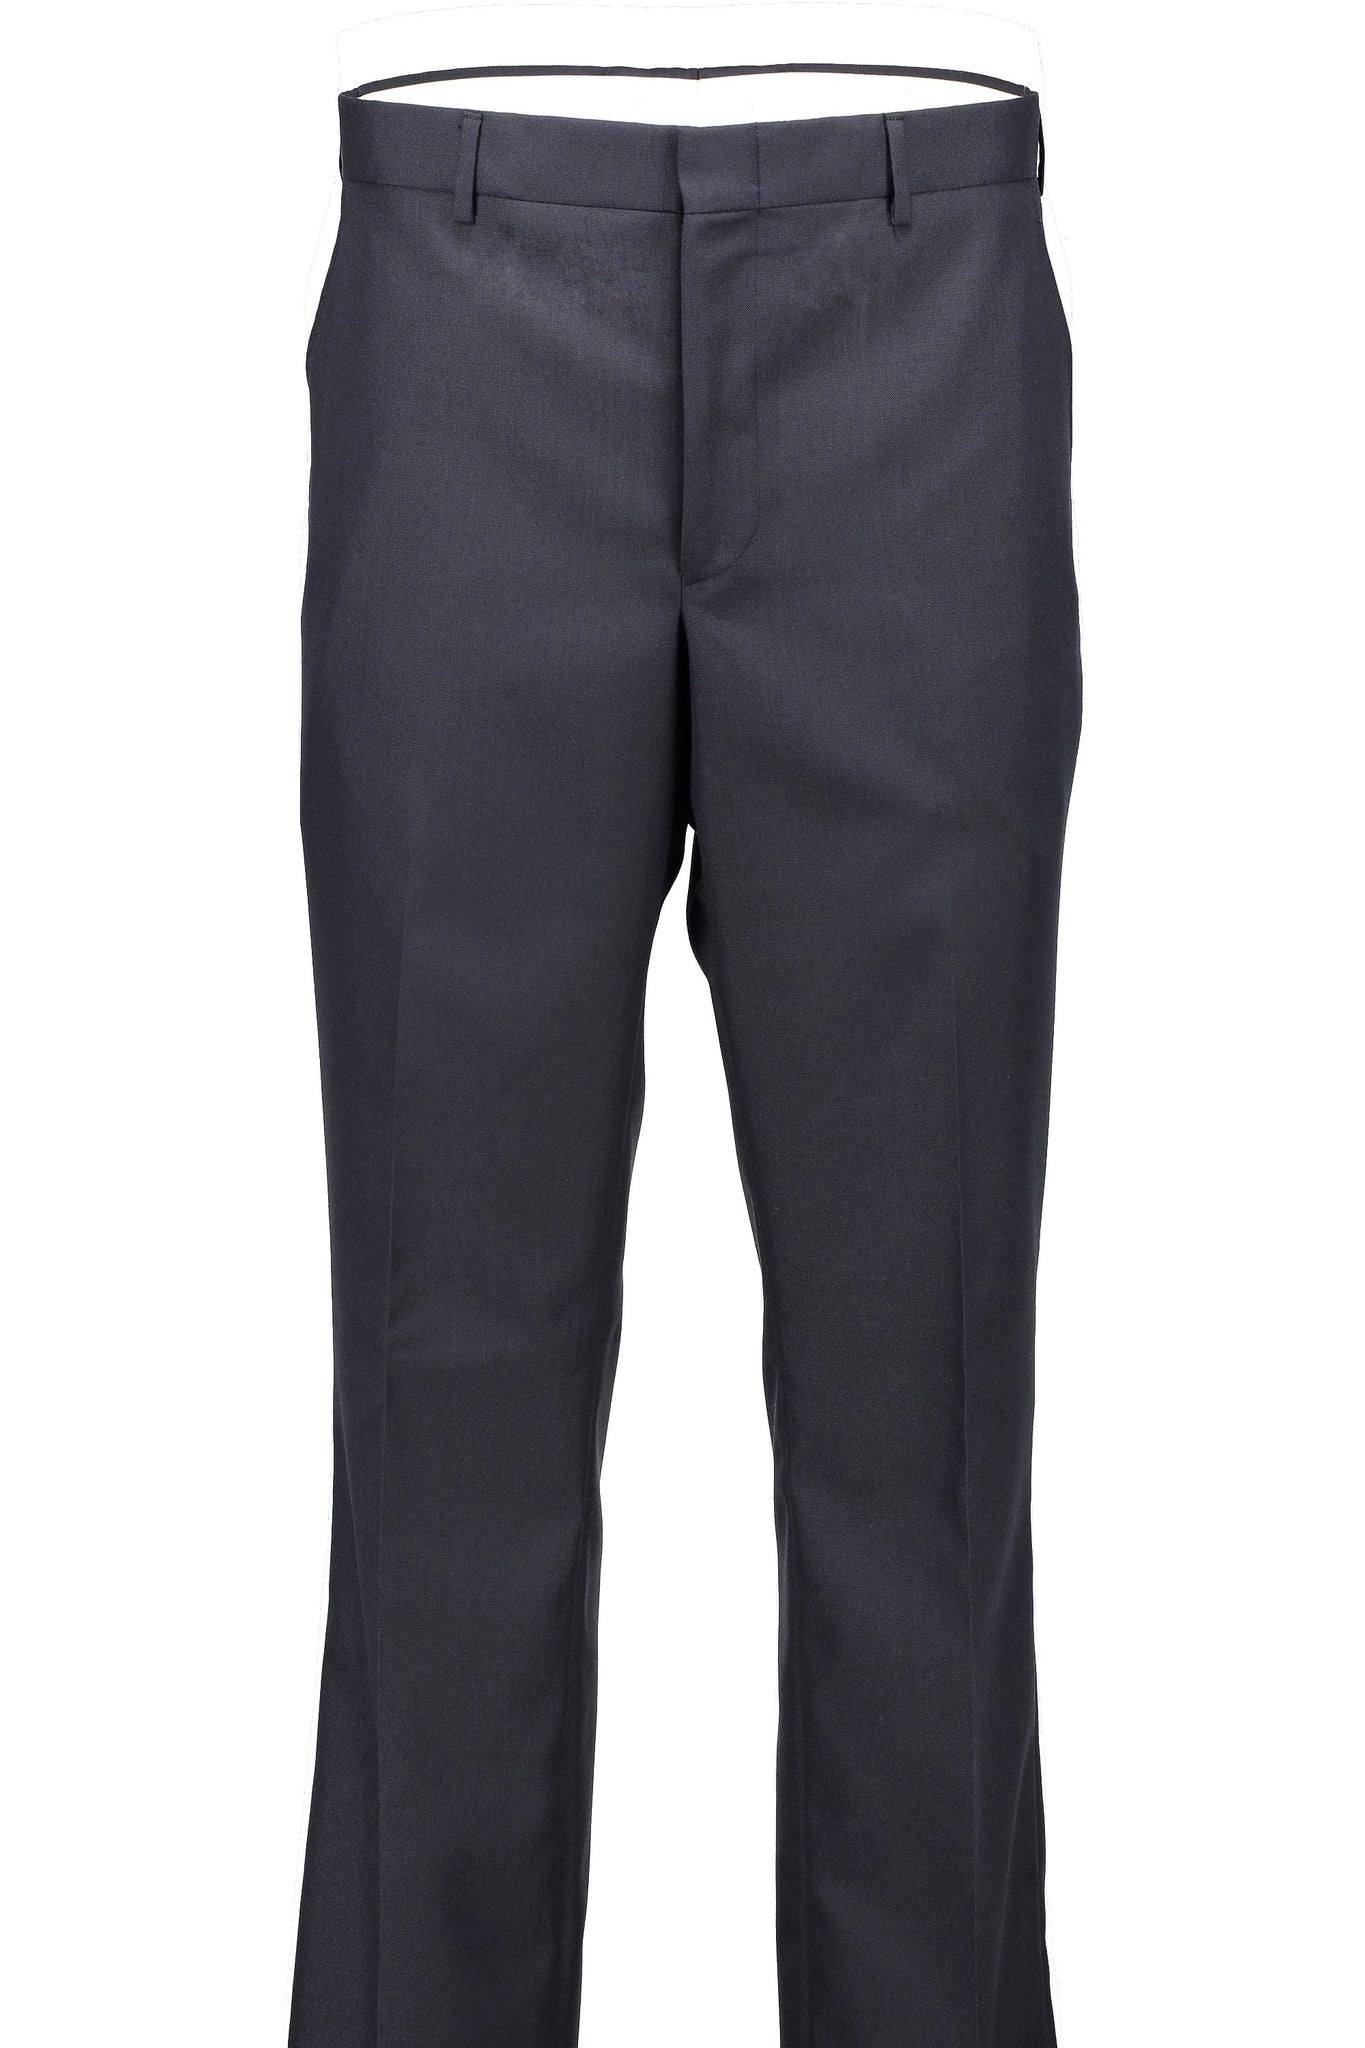 Classic Fit Navy Wool Traveler Suit Separate Flat Front Pant -  Hardwick.com